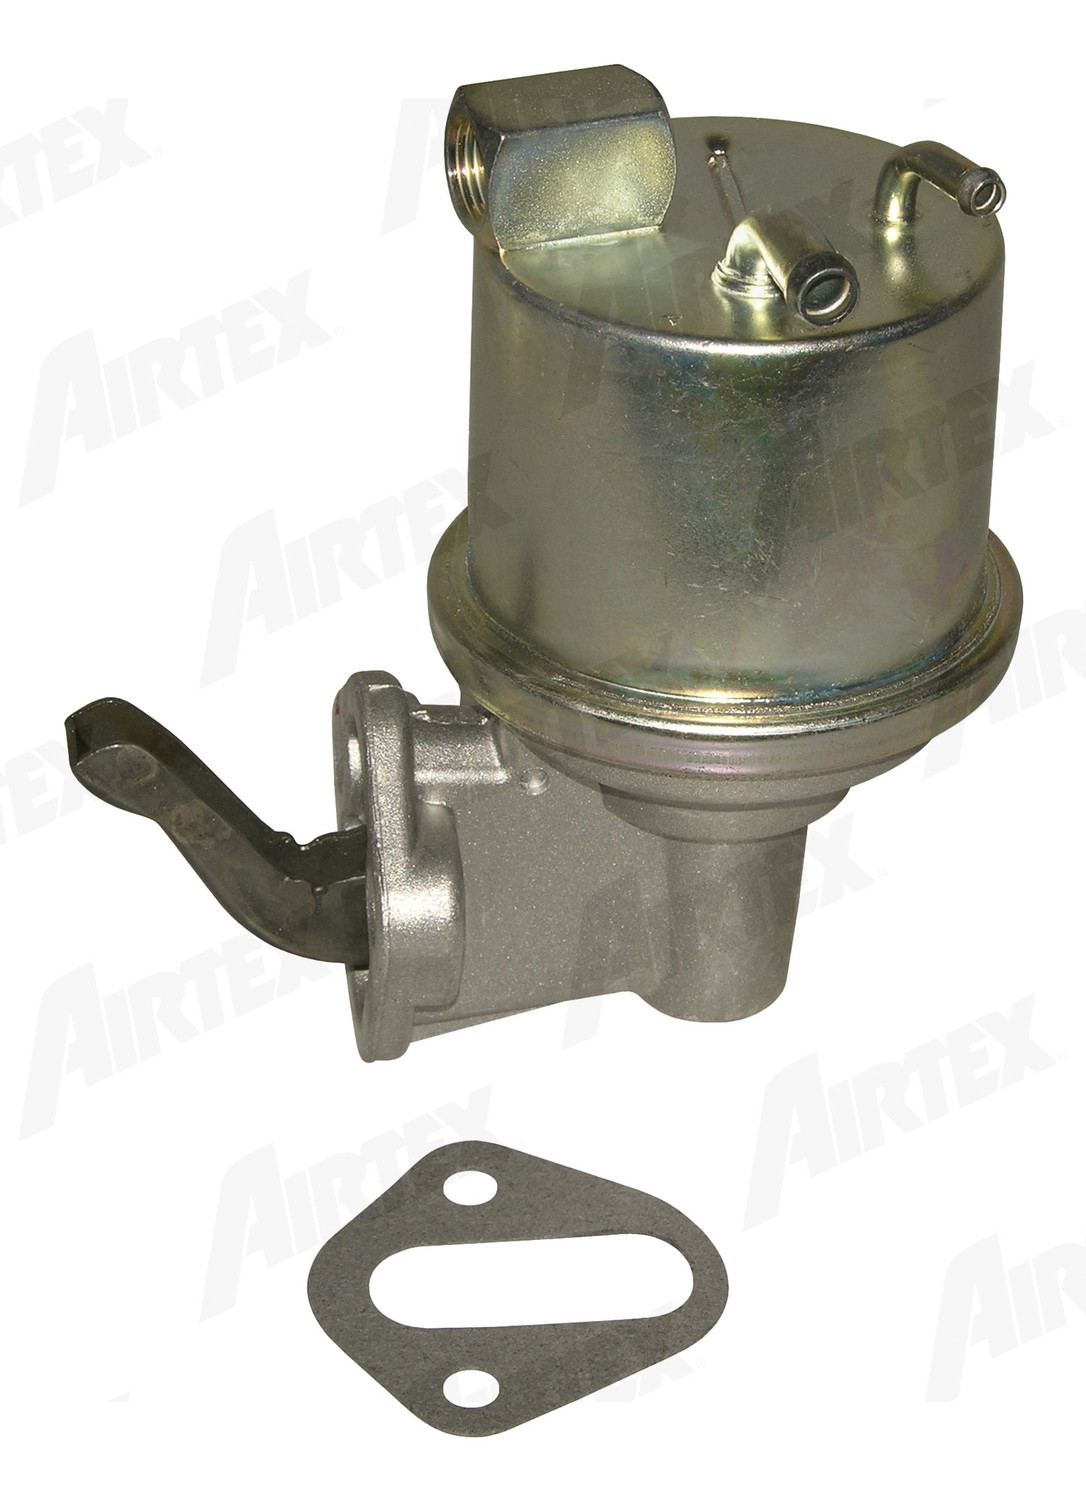 AIRTEX AUTOMOTIVE DIVISION - Mechanical Fuel Pump - ATN 40963